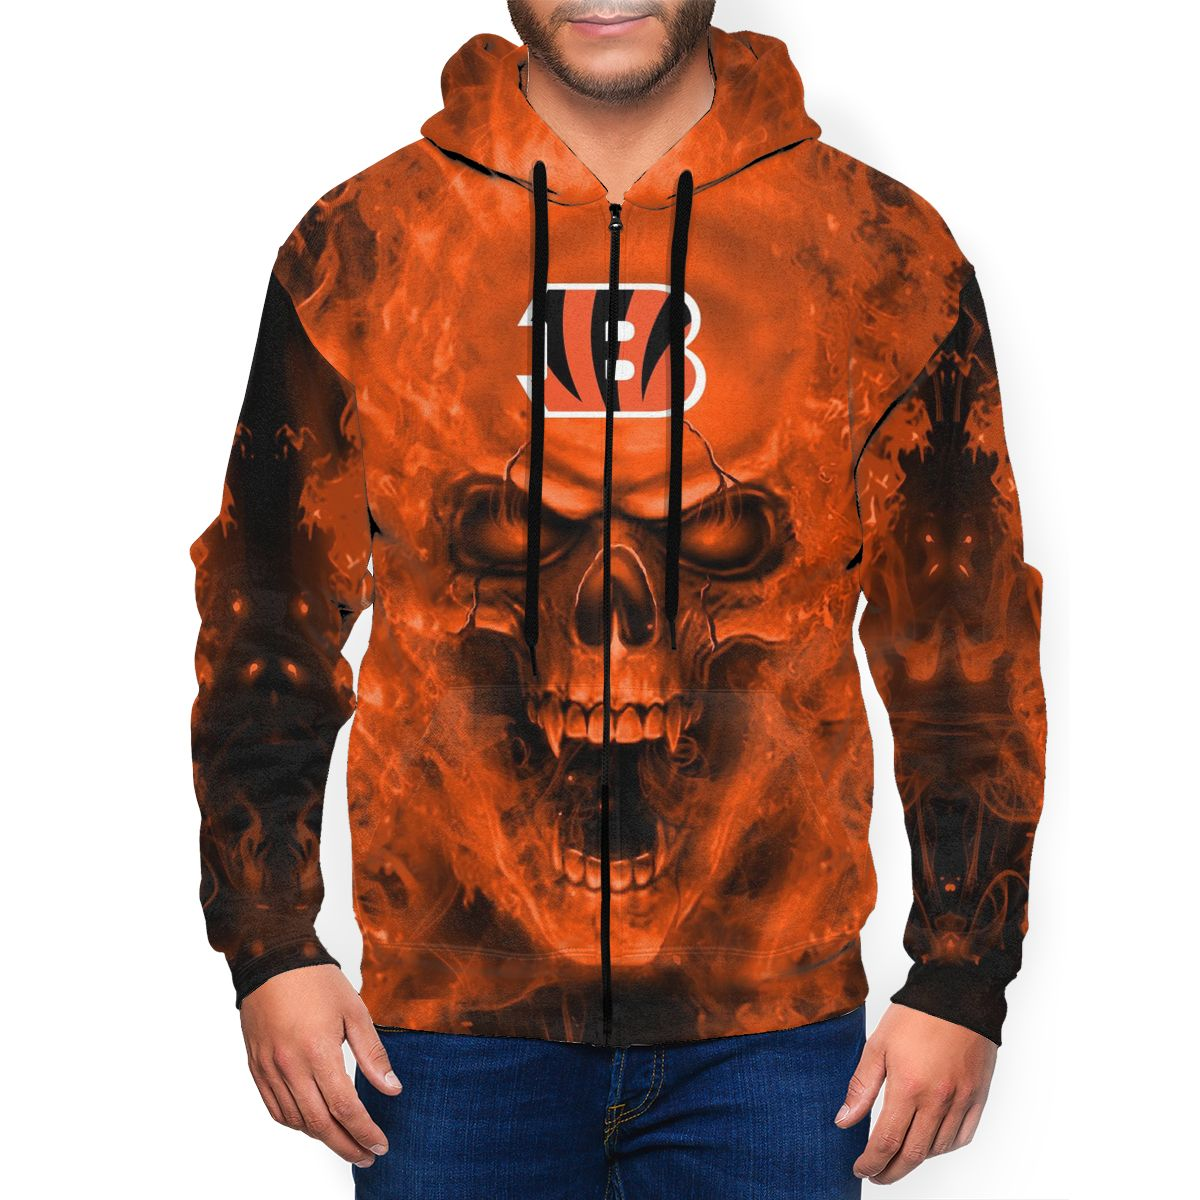 3D Skull Bengals Men's Zip Hooded Sweatshirt